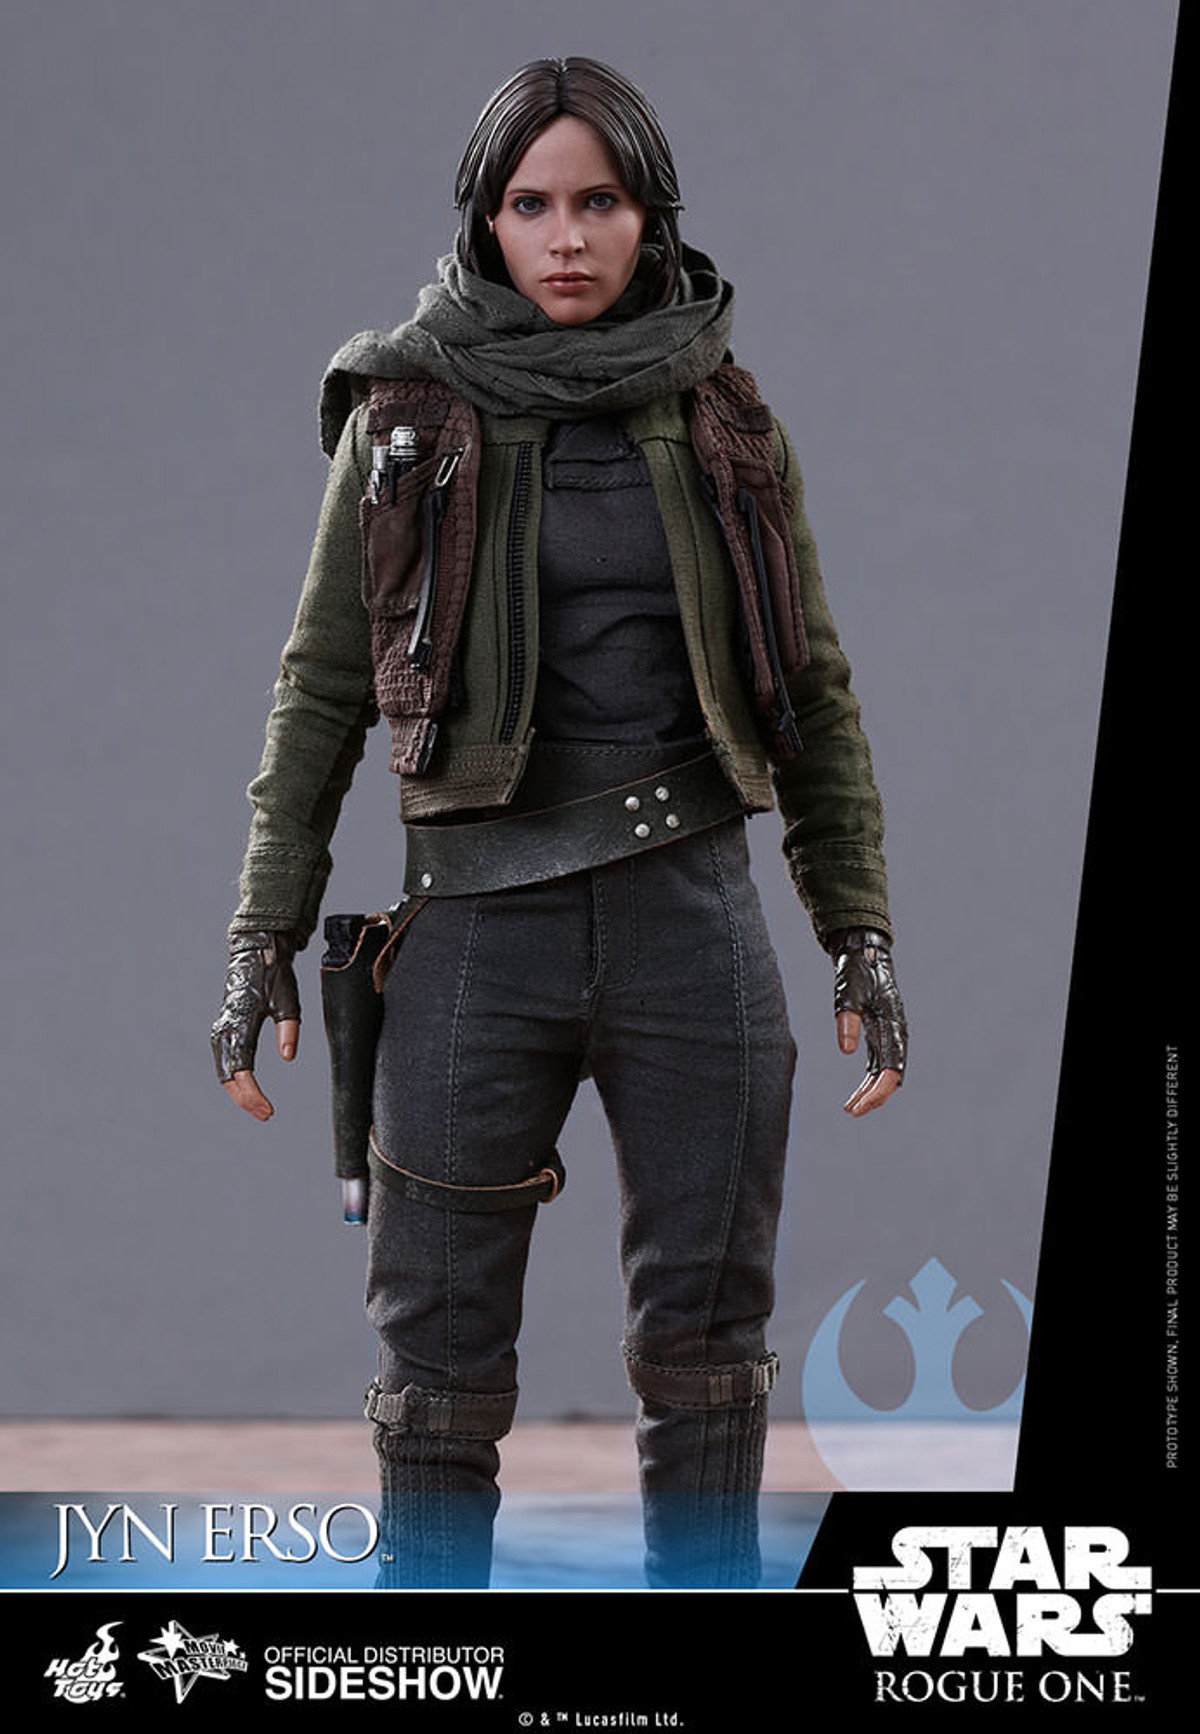 Hot Toys Star Wars Rogue One Jyn Erso Figure Stand loose 1//6th scale